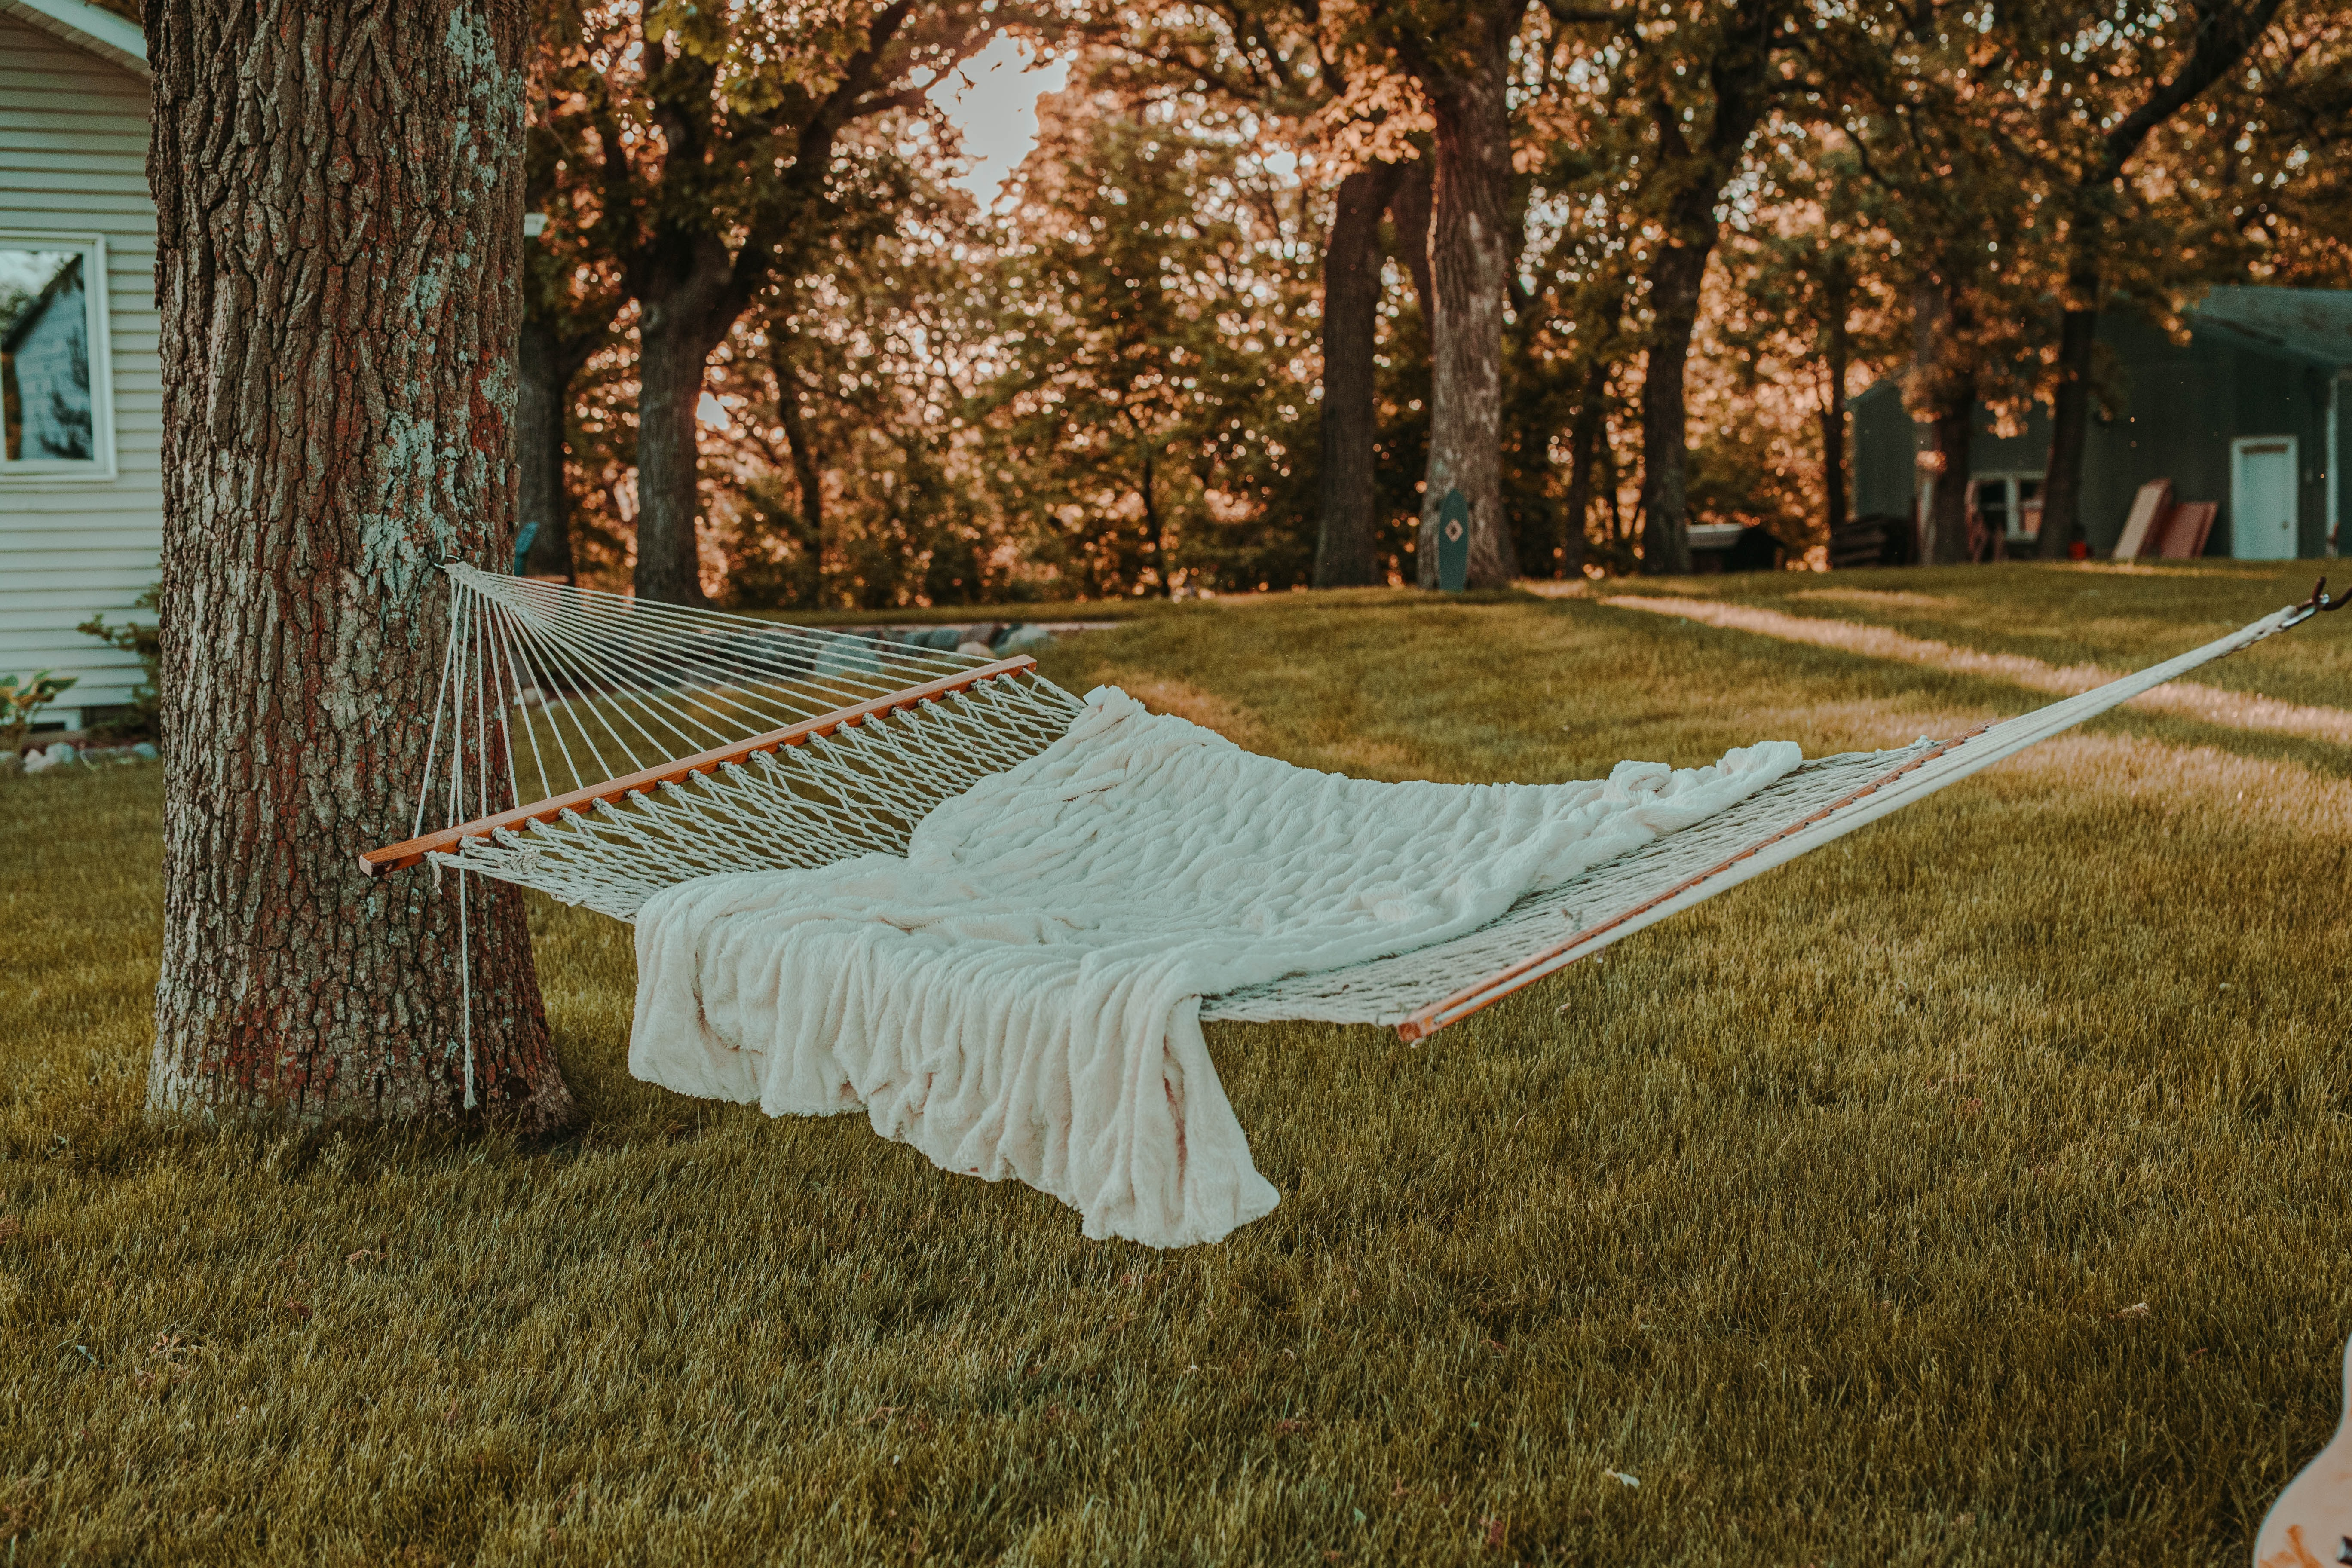 A hammock covered with a white blanket hangs between two trees in a backyard.